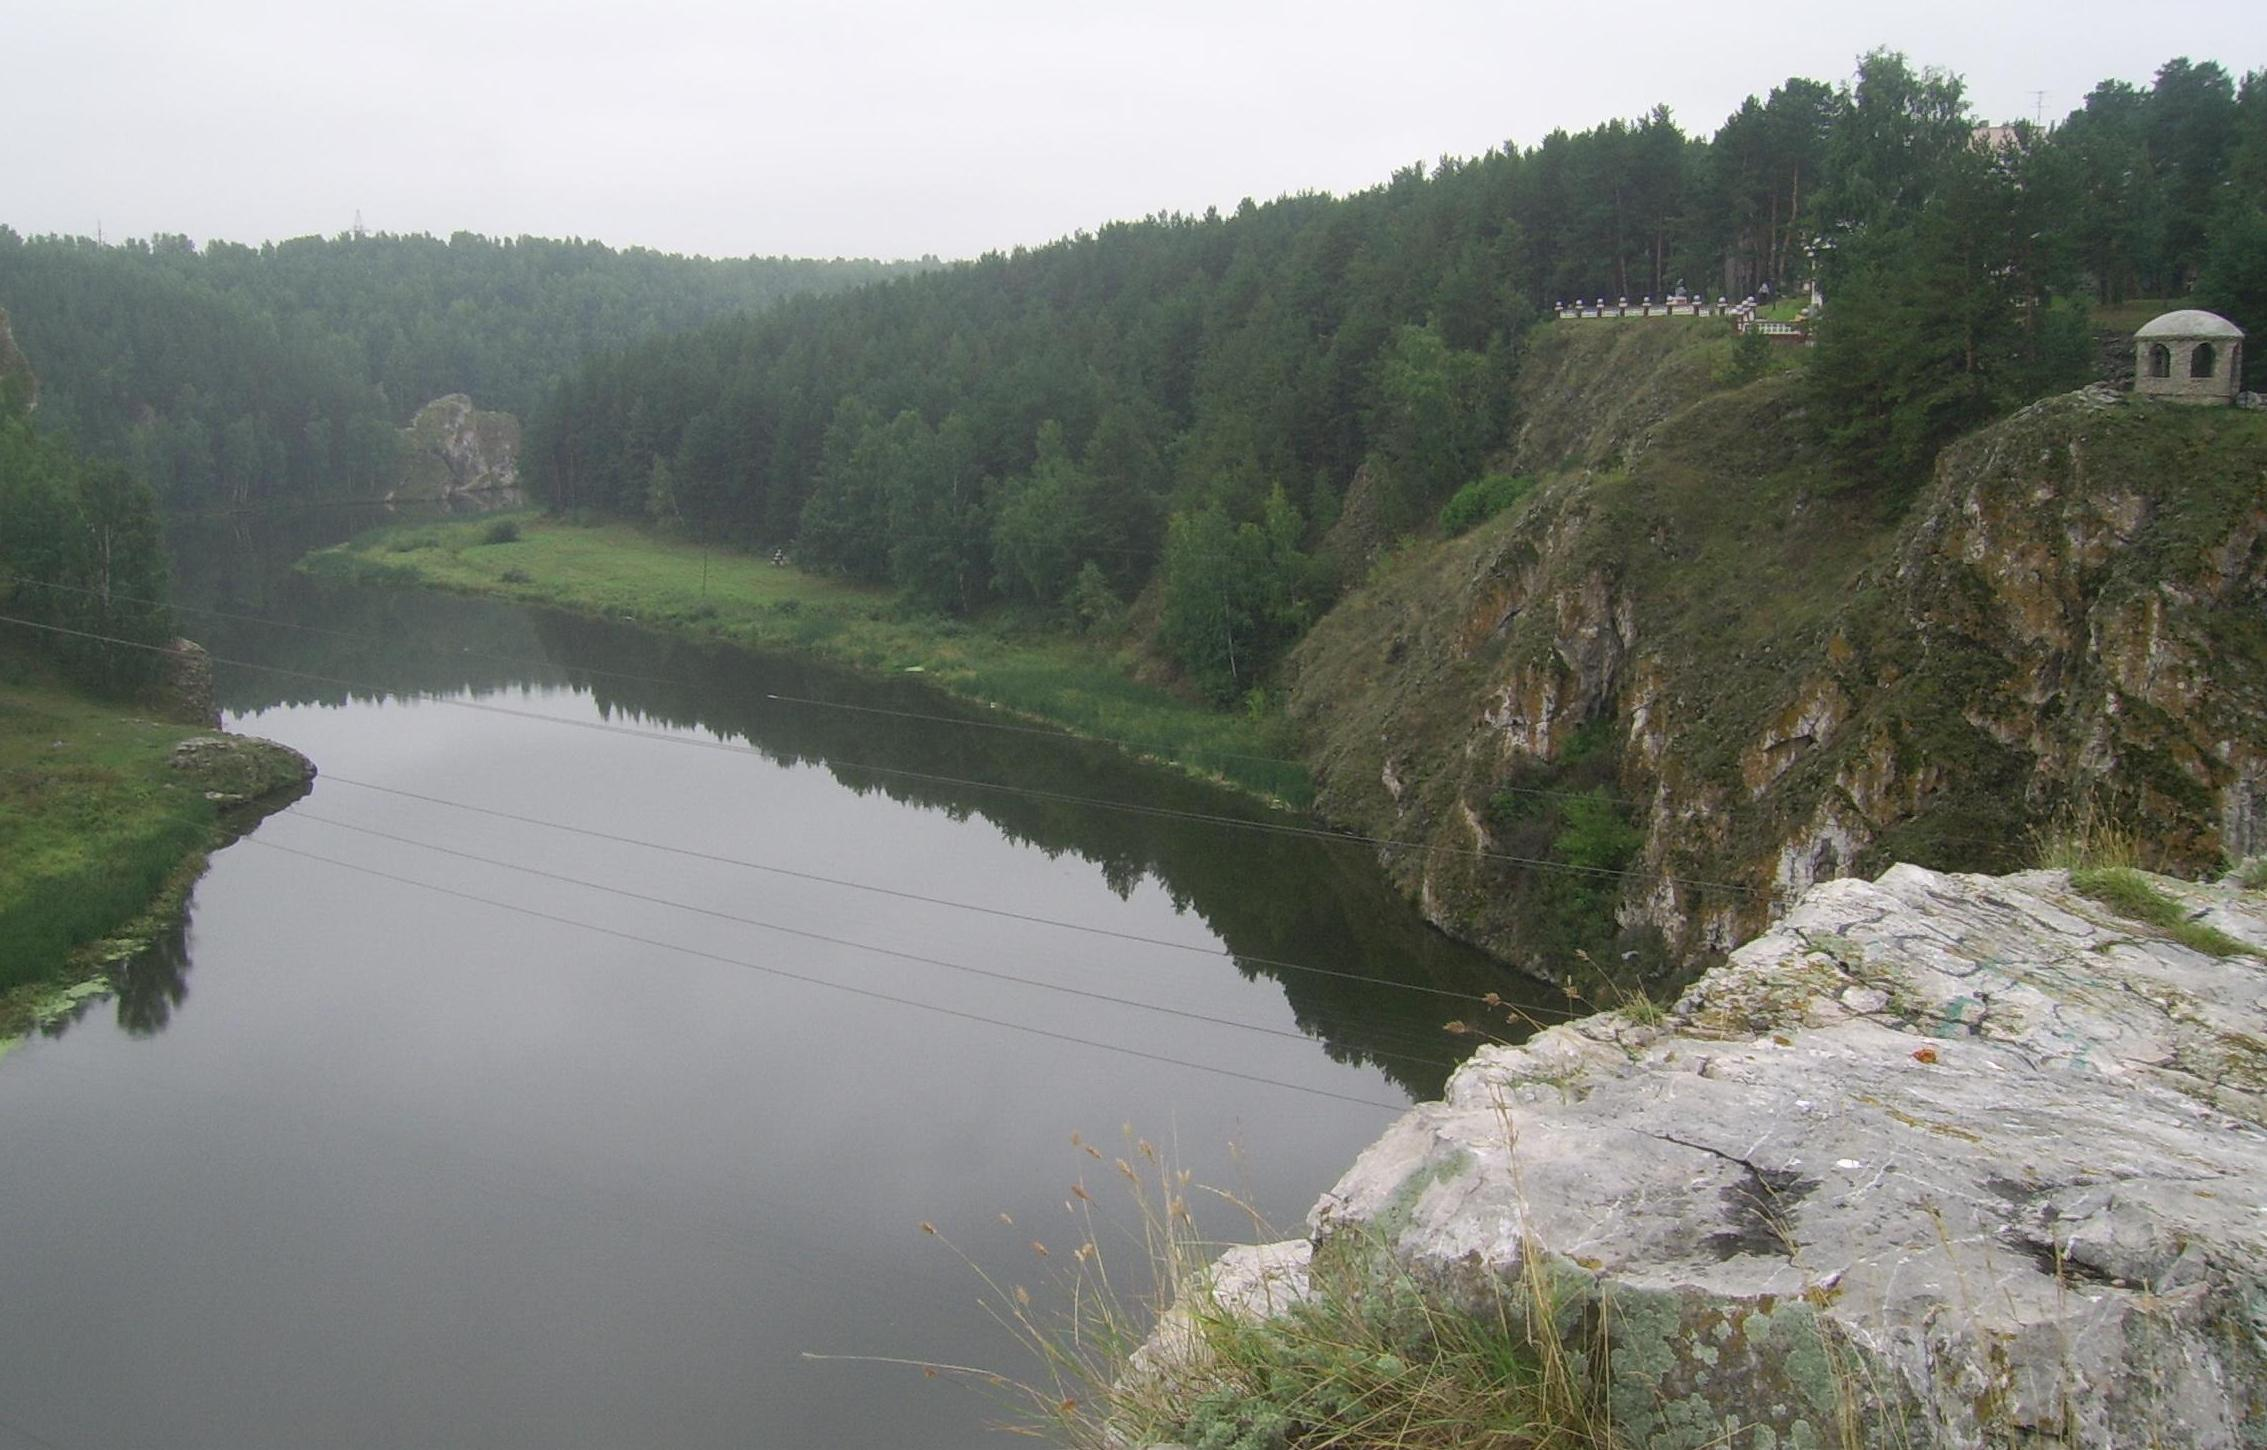 https://upload.wikimedia.org/wikipedia/commons/6/6e/Iset_-_view_from_Three_Caves_%28right%29.jpg